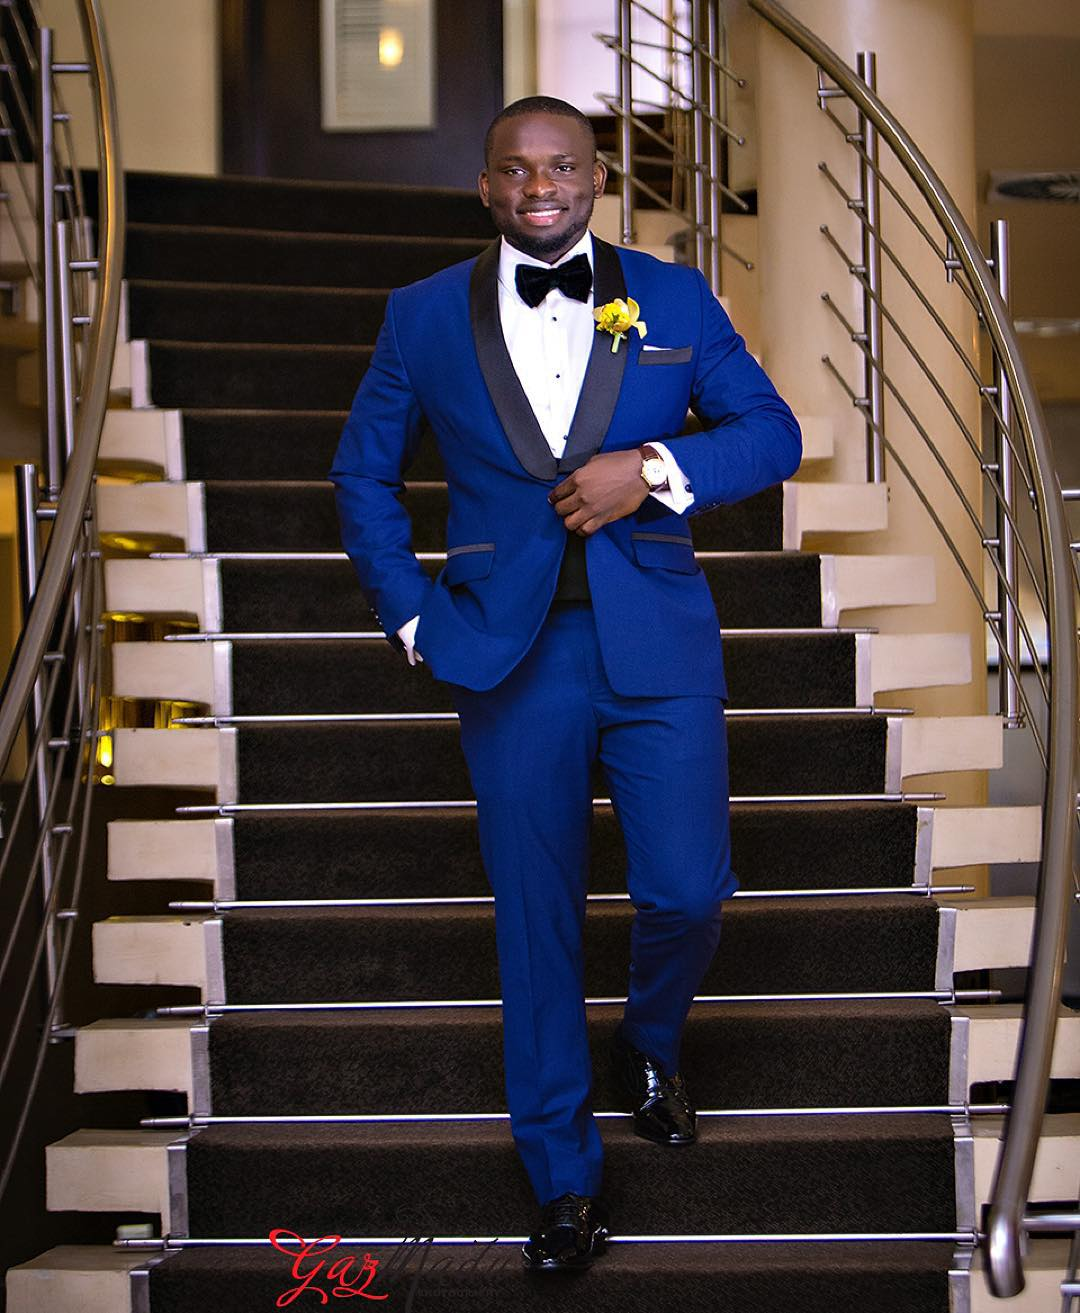 Wedding Men Hair Style: 8 Different Styles Of The Blue Tuxedo For The Groom